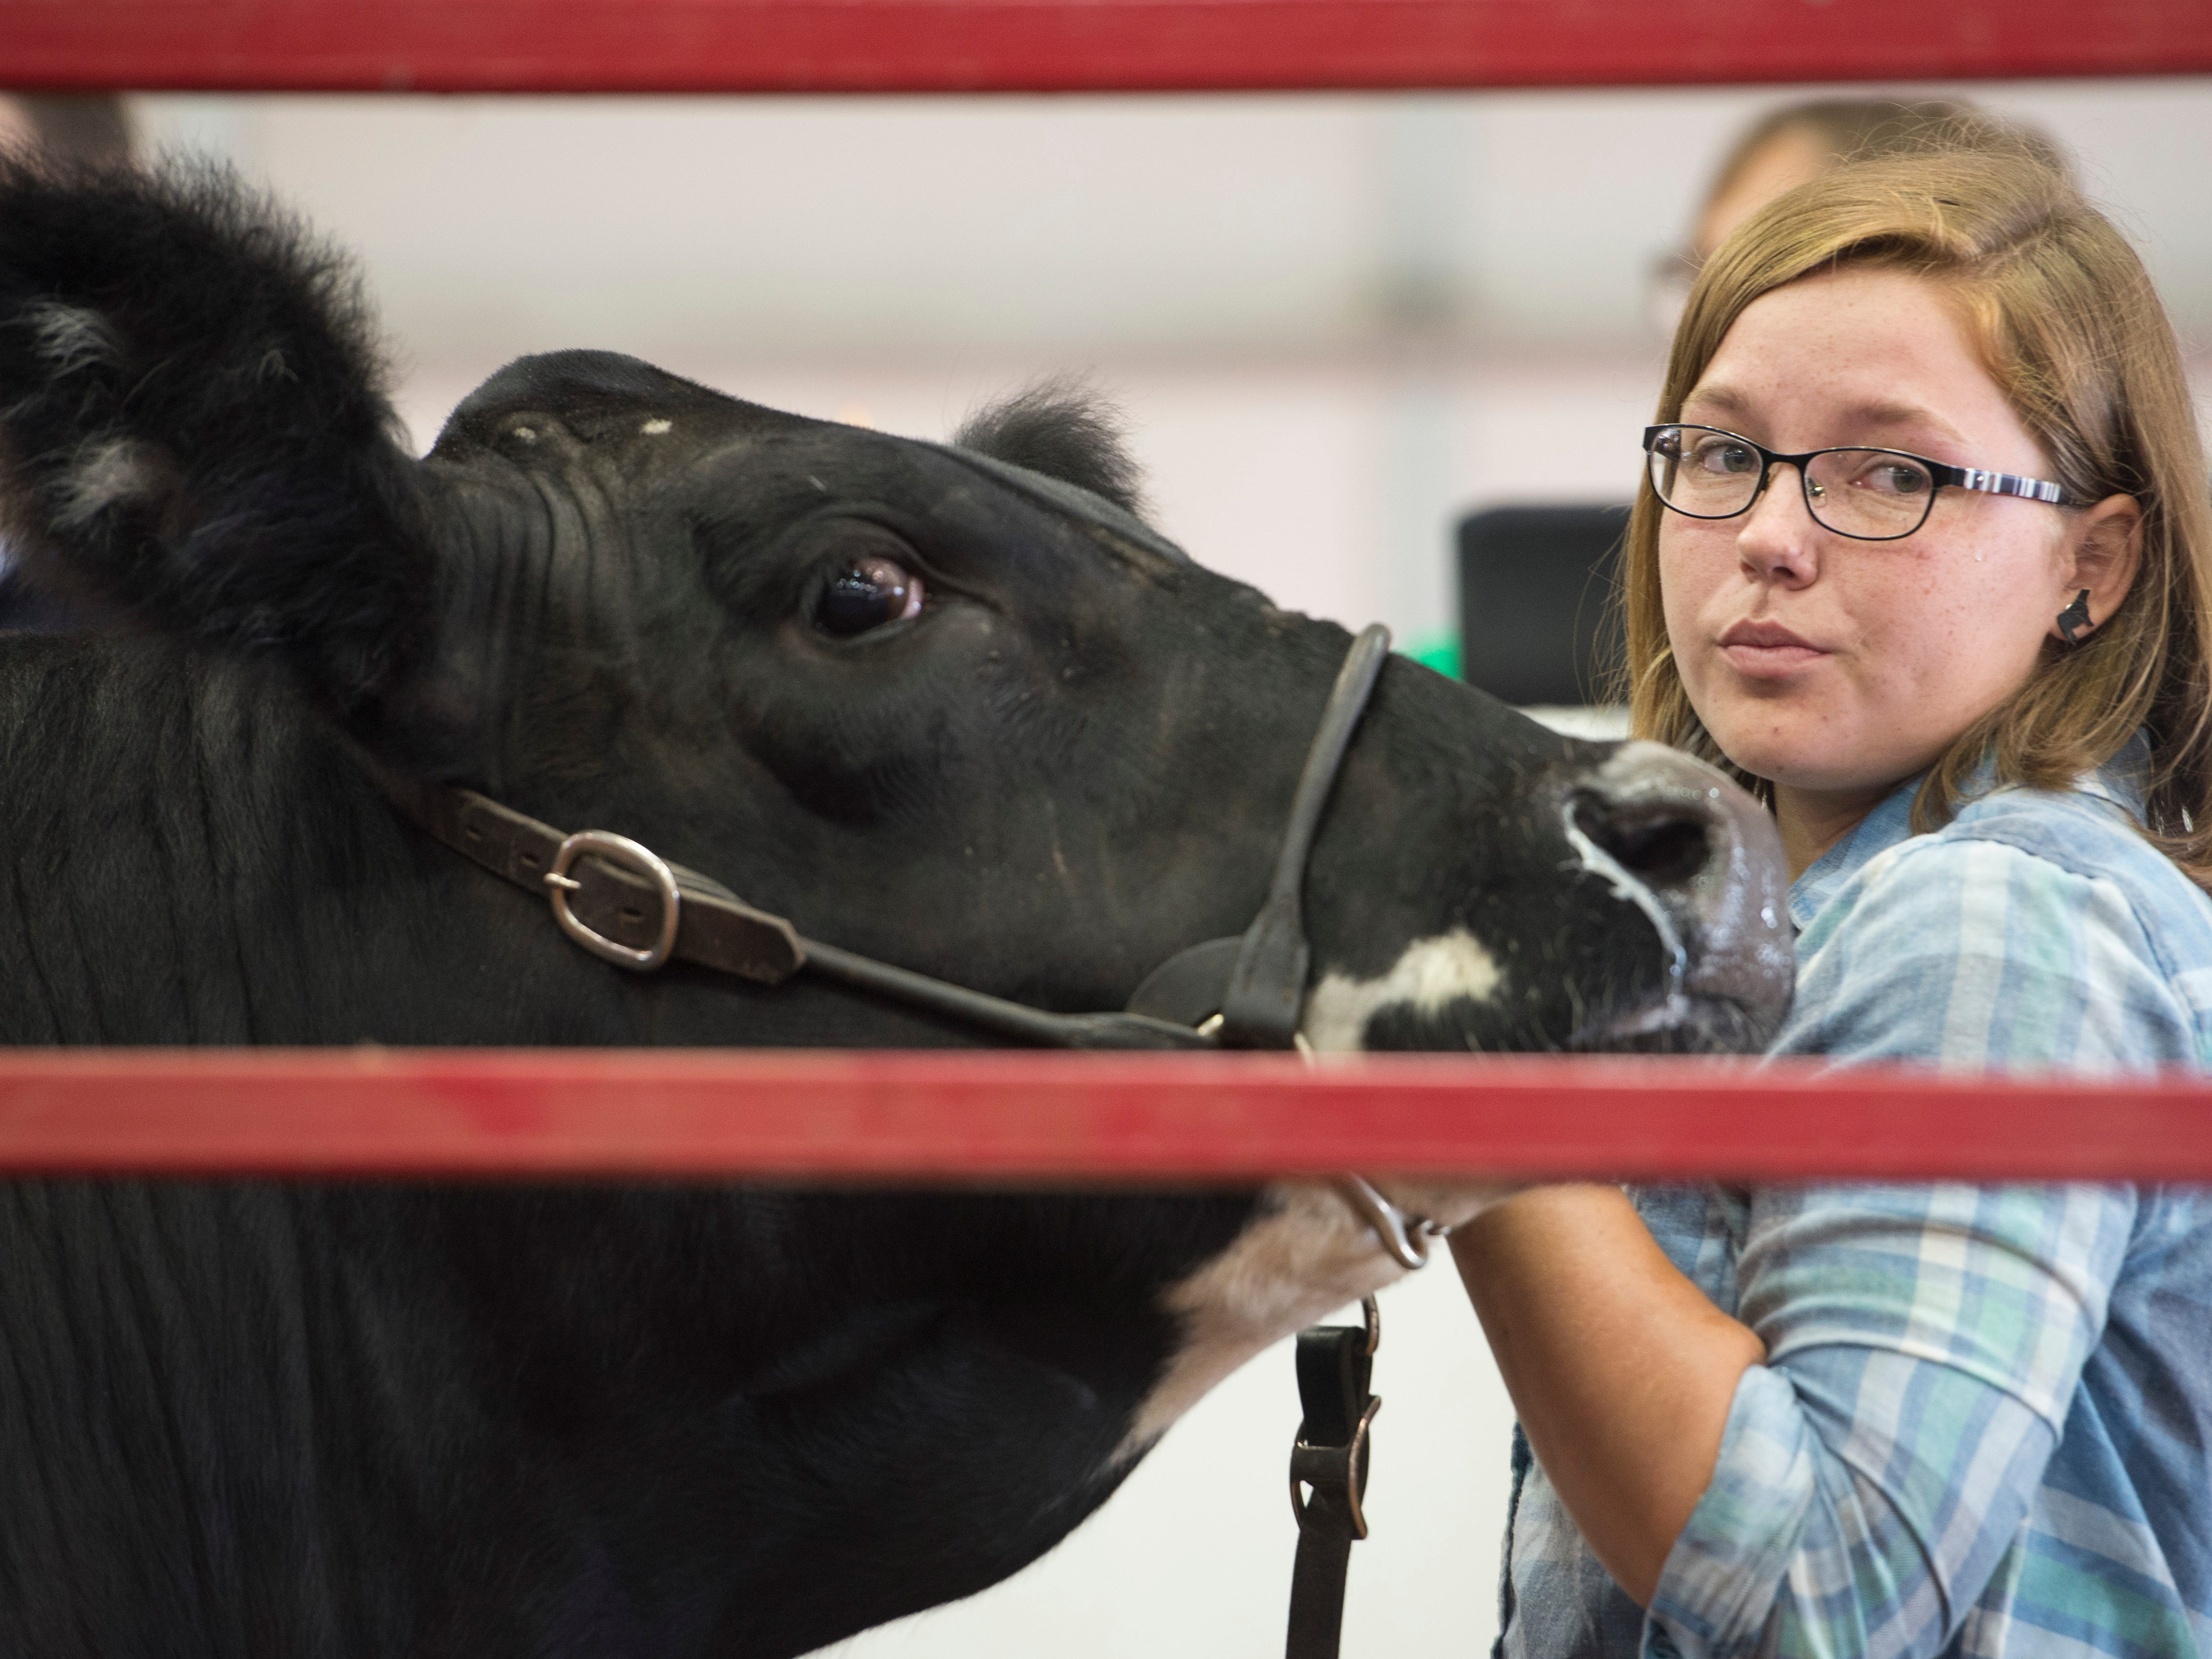 A young exhibitor displays her steer during auction at the Jr. Fair Market Steer, Poultry and Rabbit Sale at the Ross County Fair on August 11, 2018, in Chillicothe, Ohio.